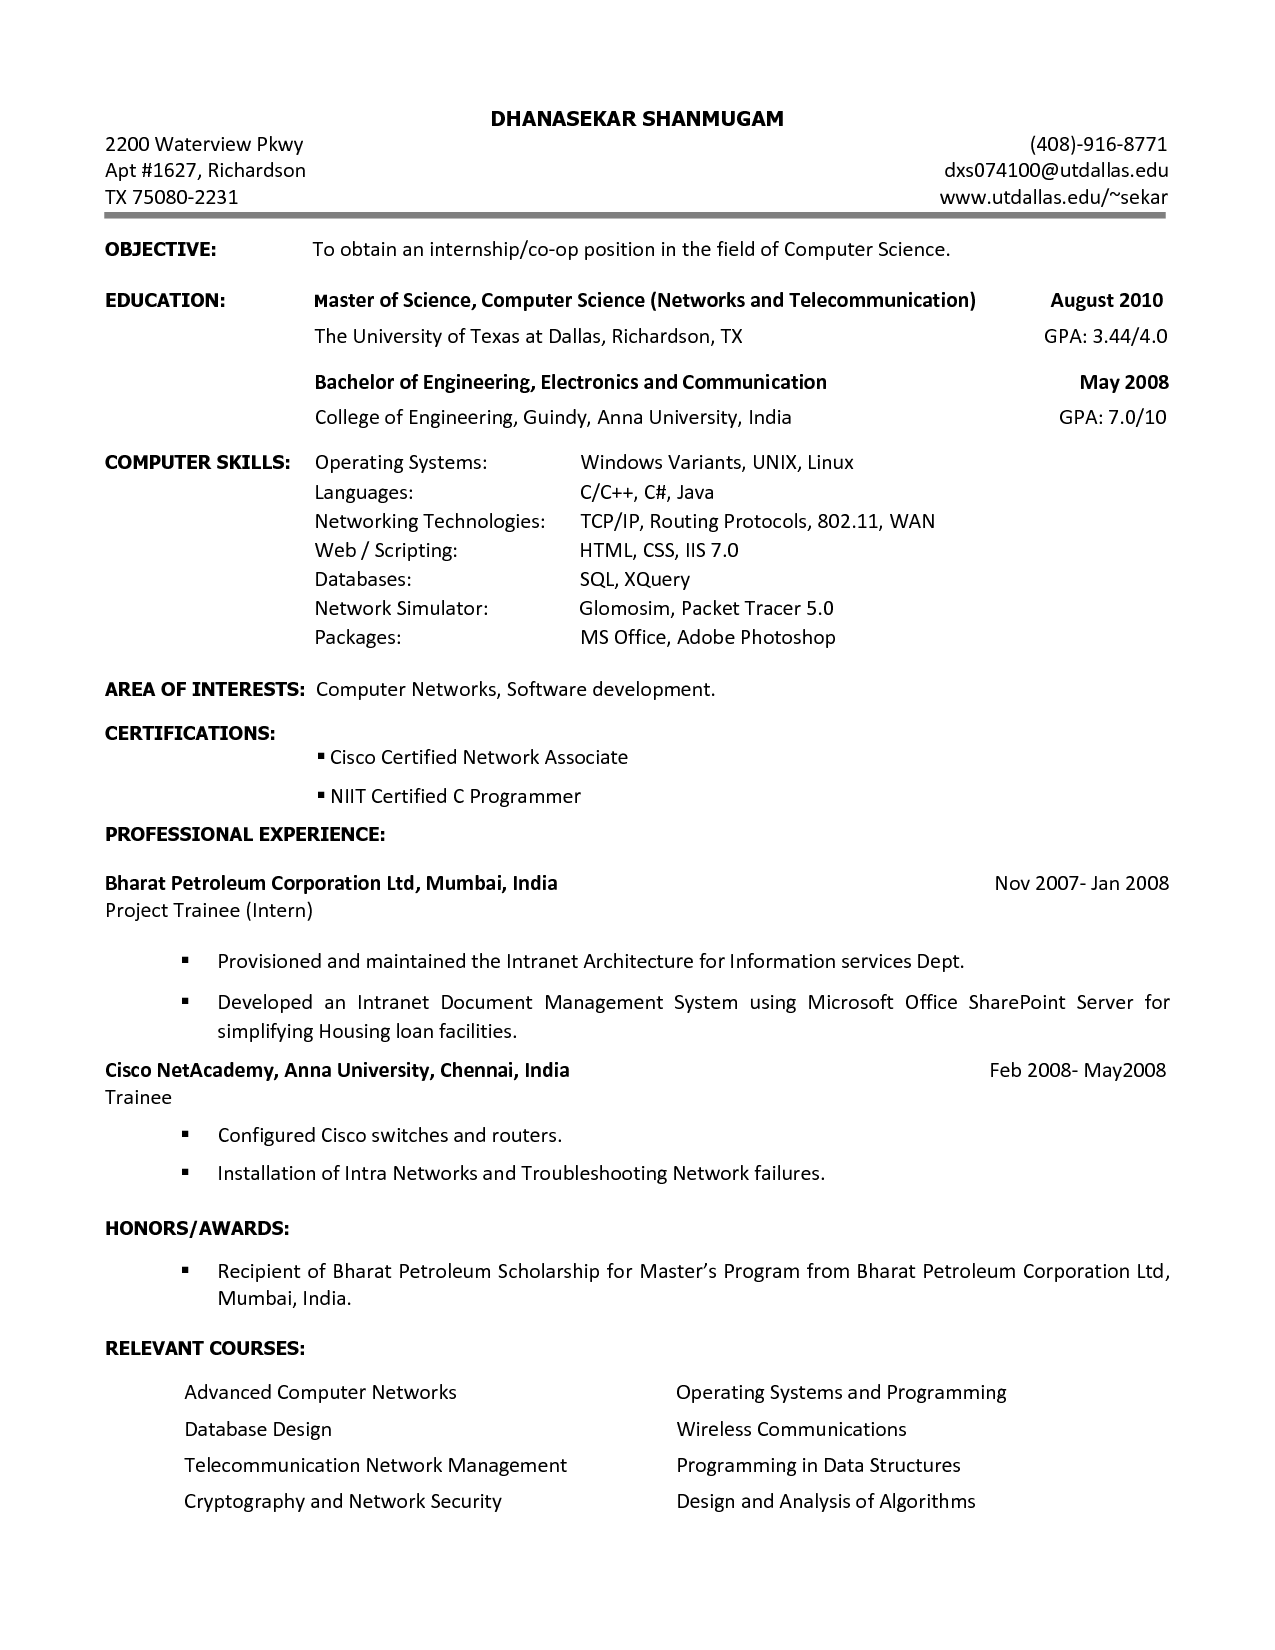 Resume Builder Resume Builder Free Download, free resume